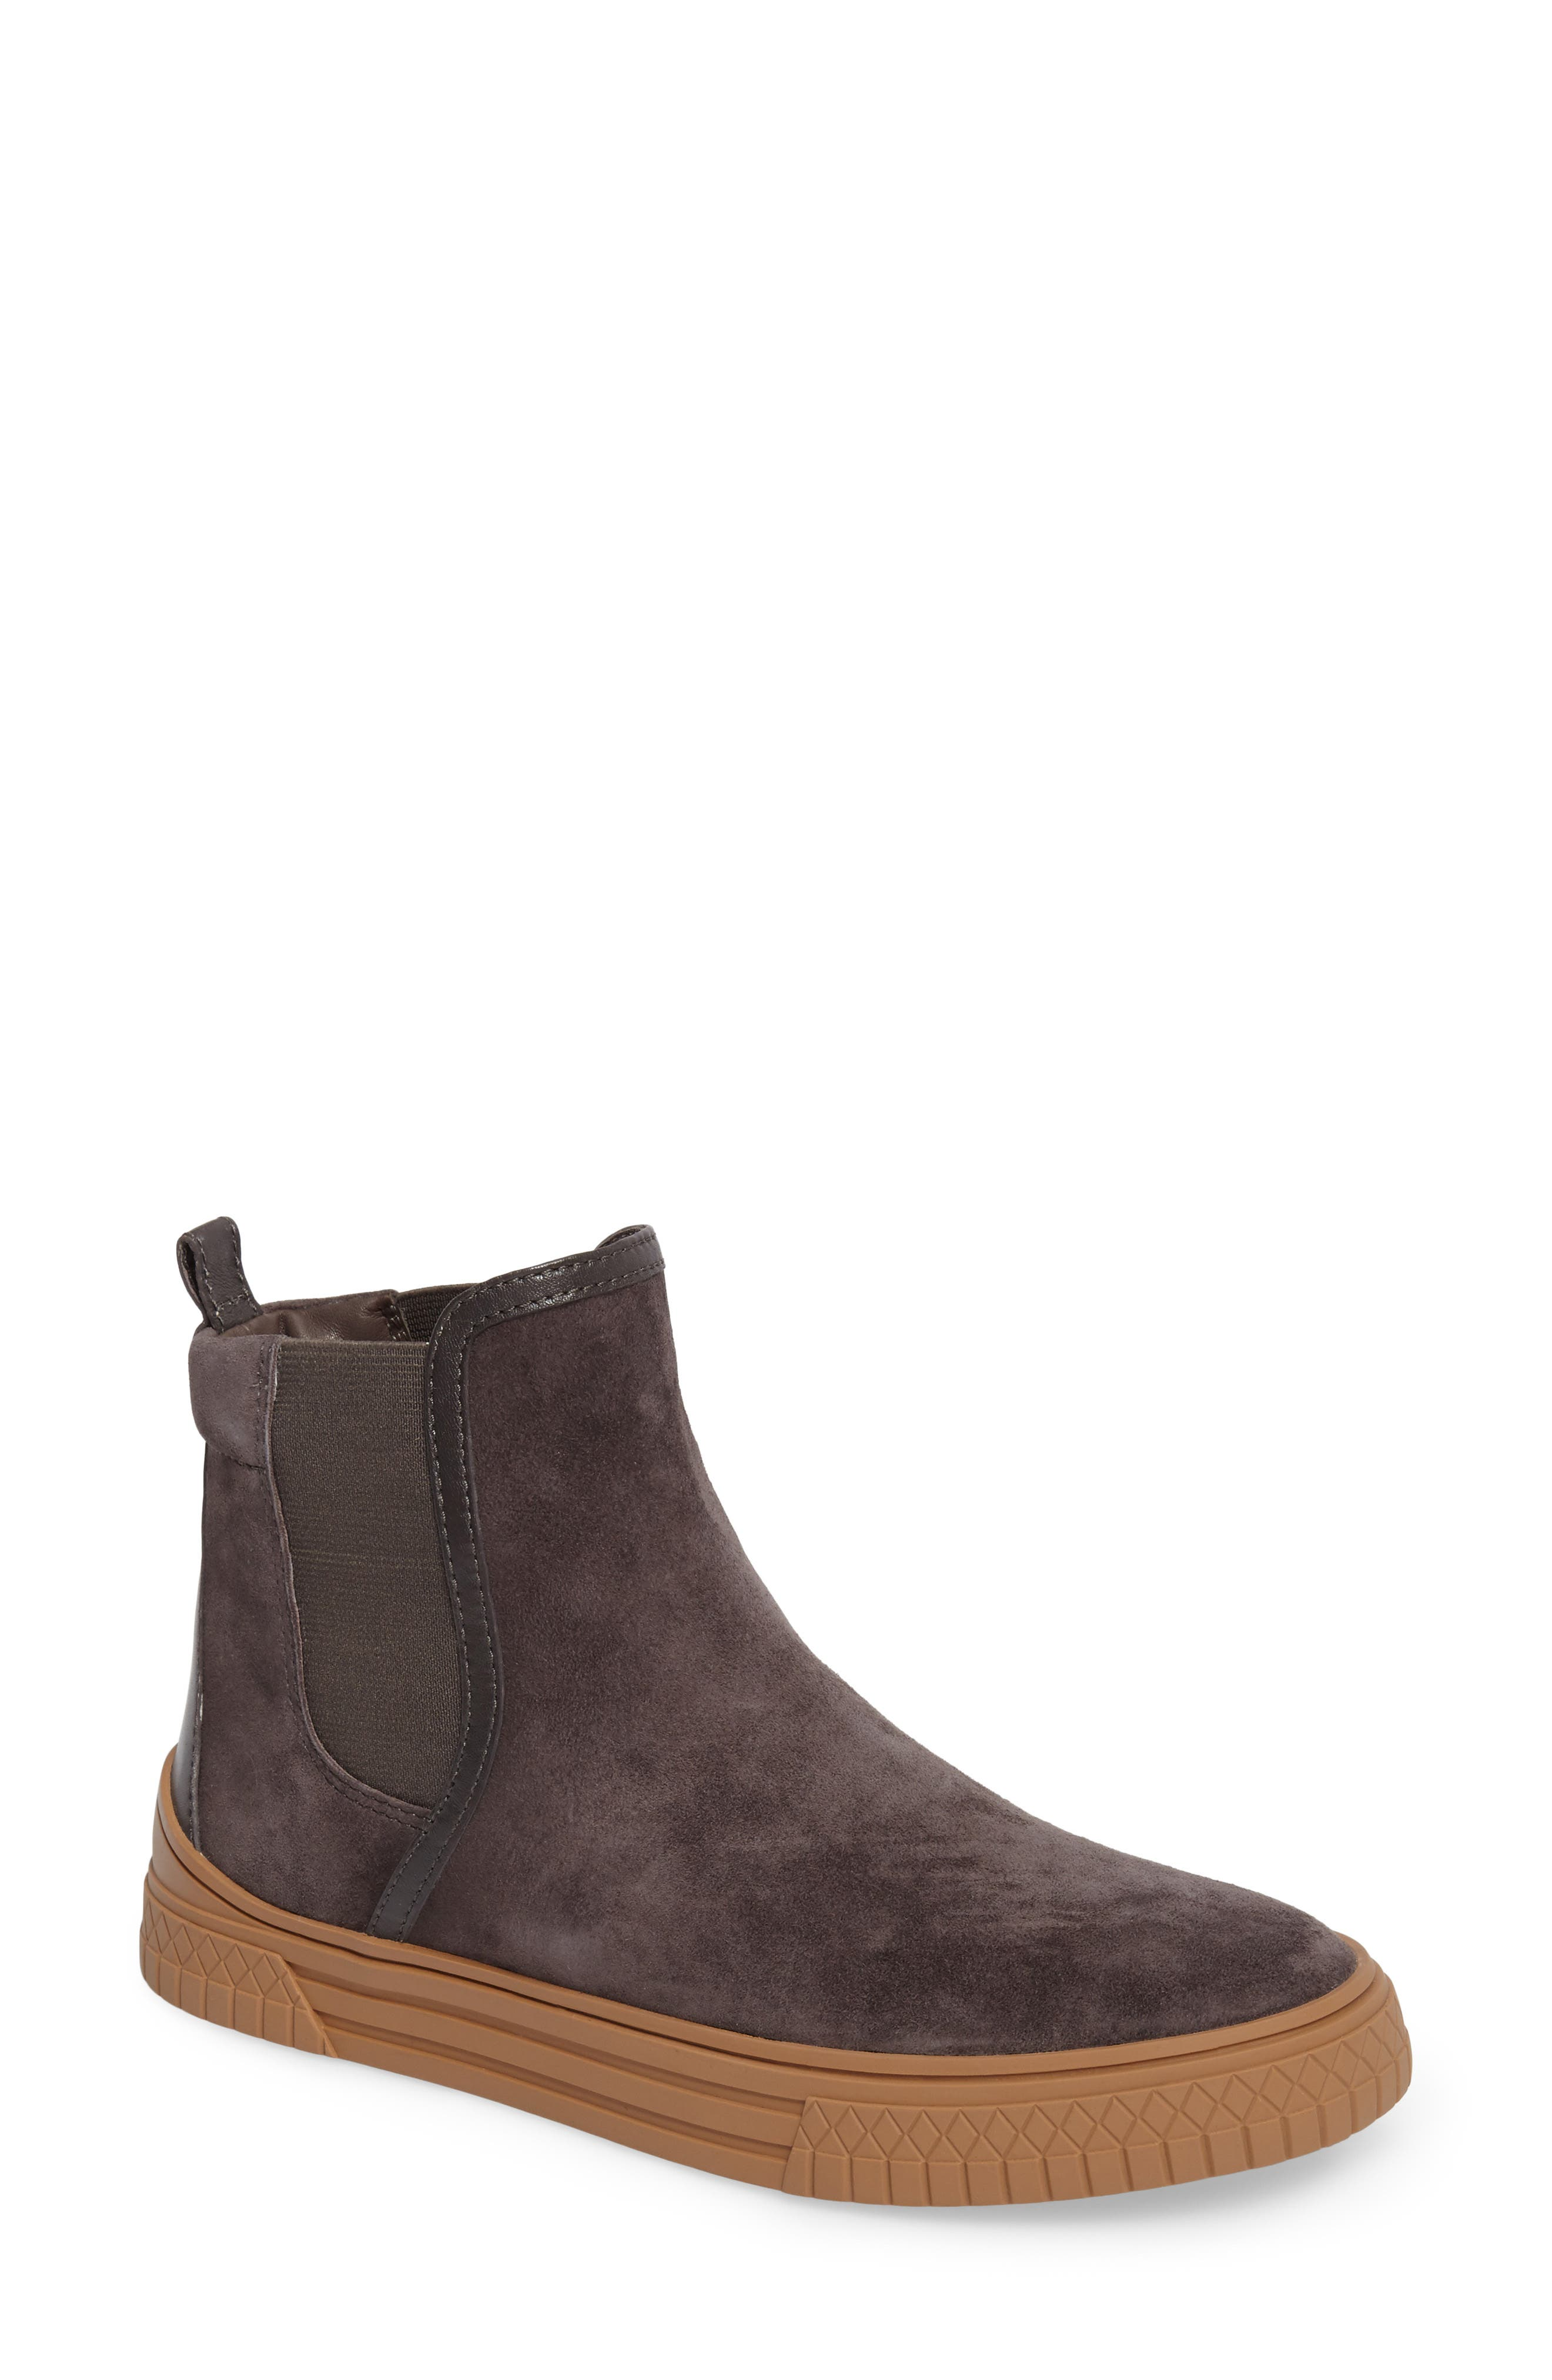 Alternate Image 1 Selected - Linea Paolo Gage Chelsea Boot (Women)